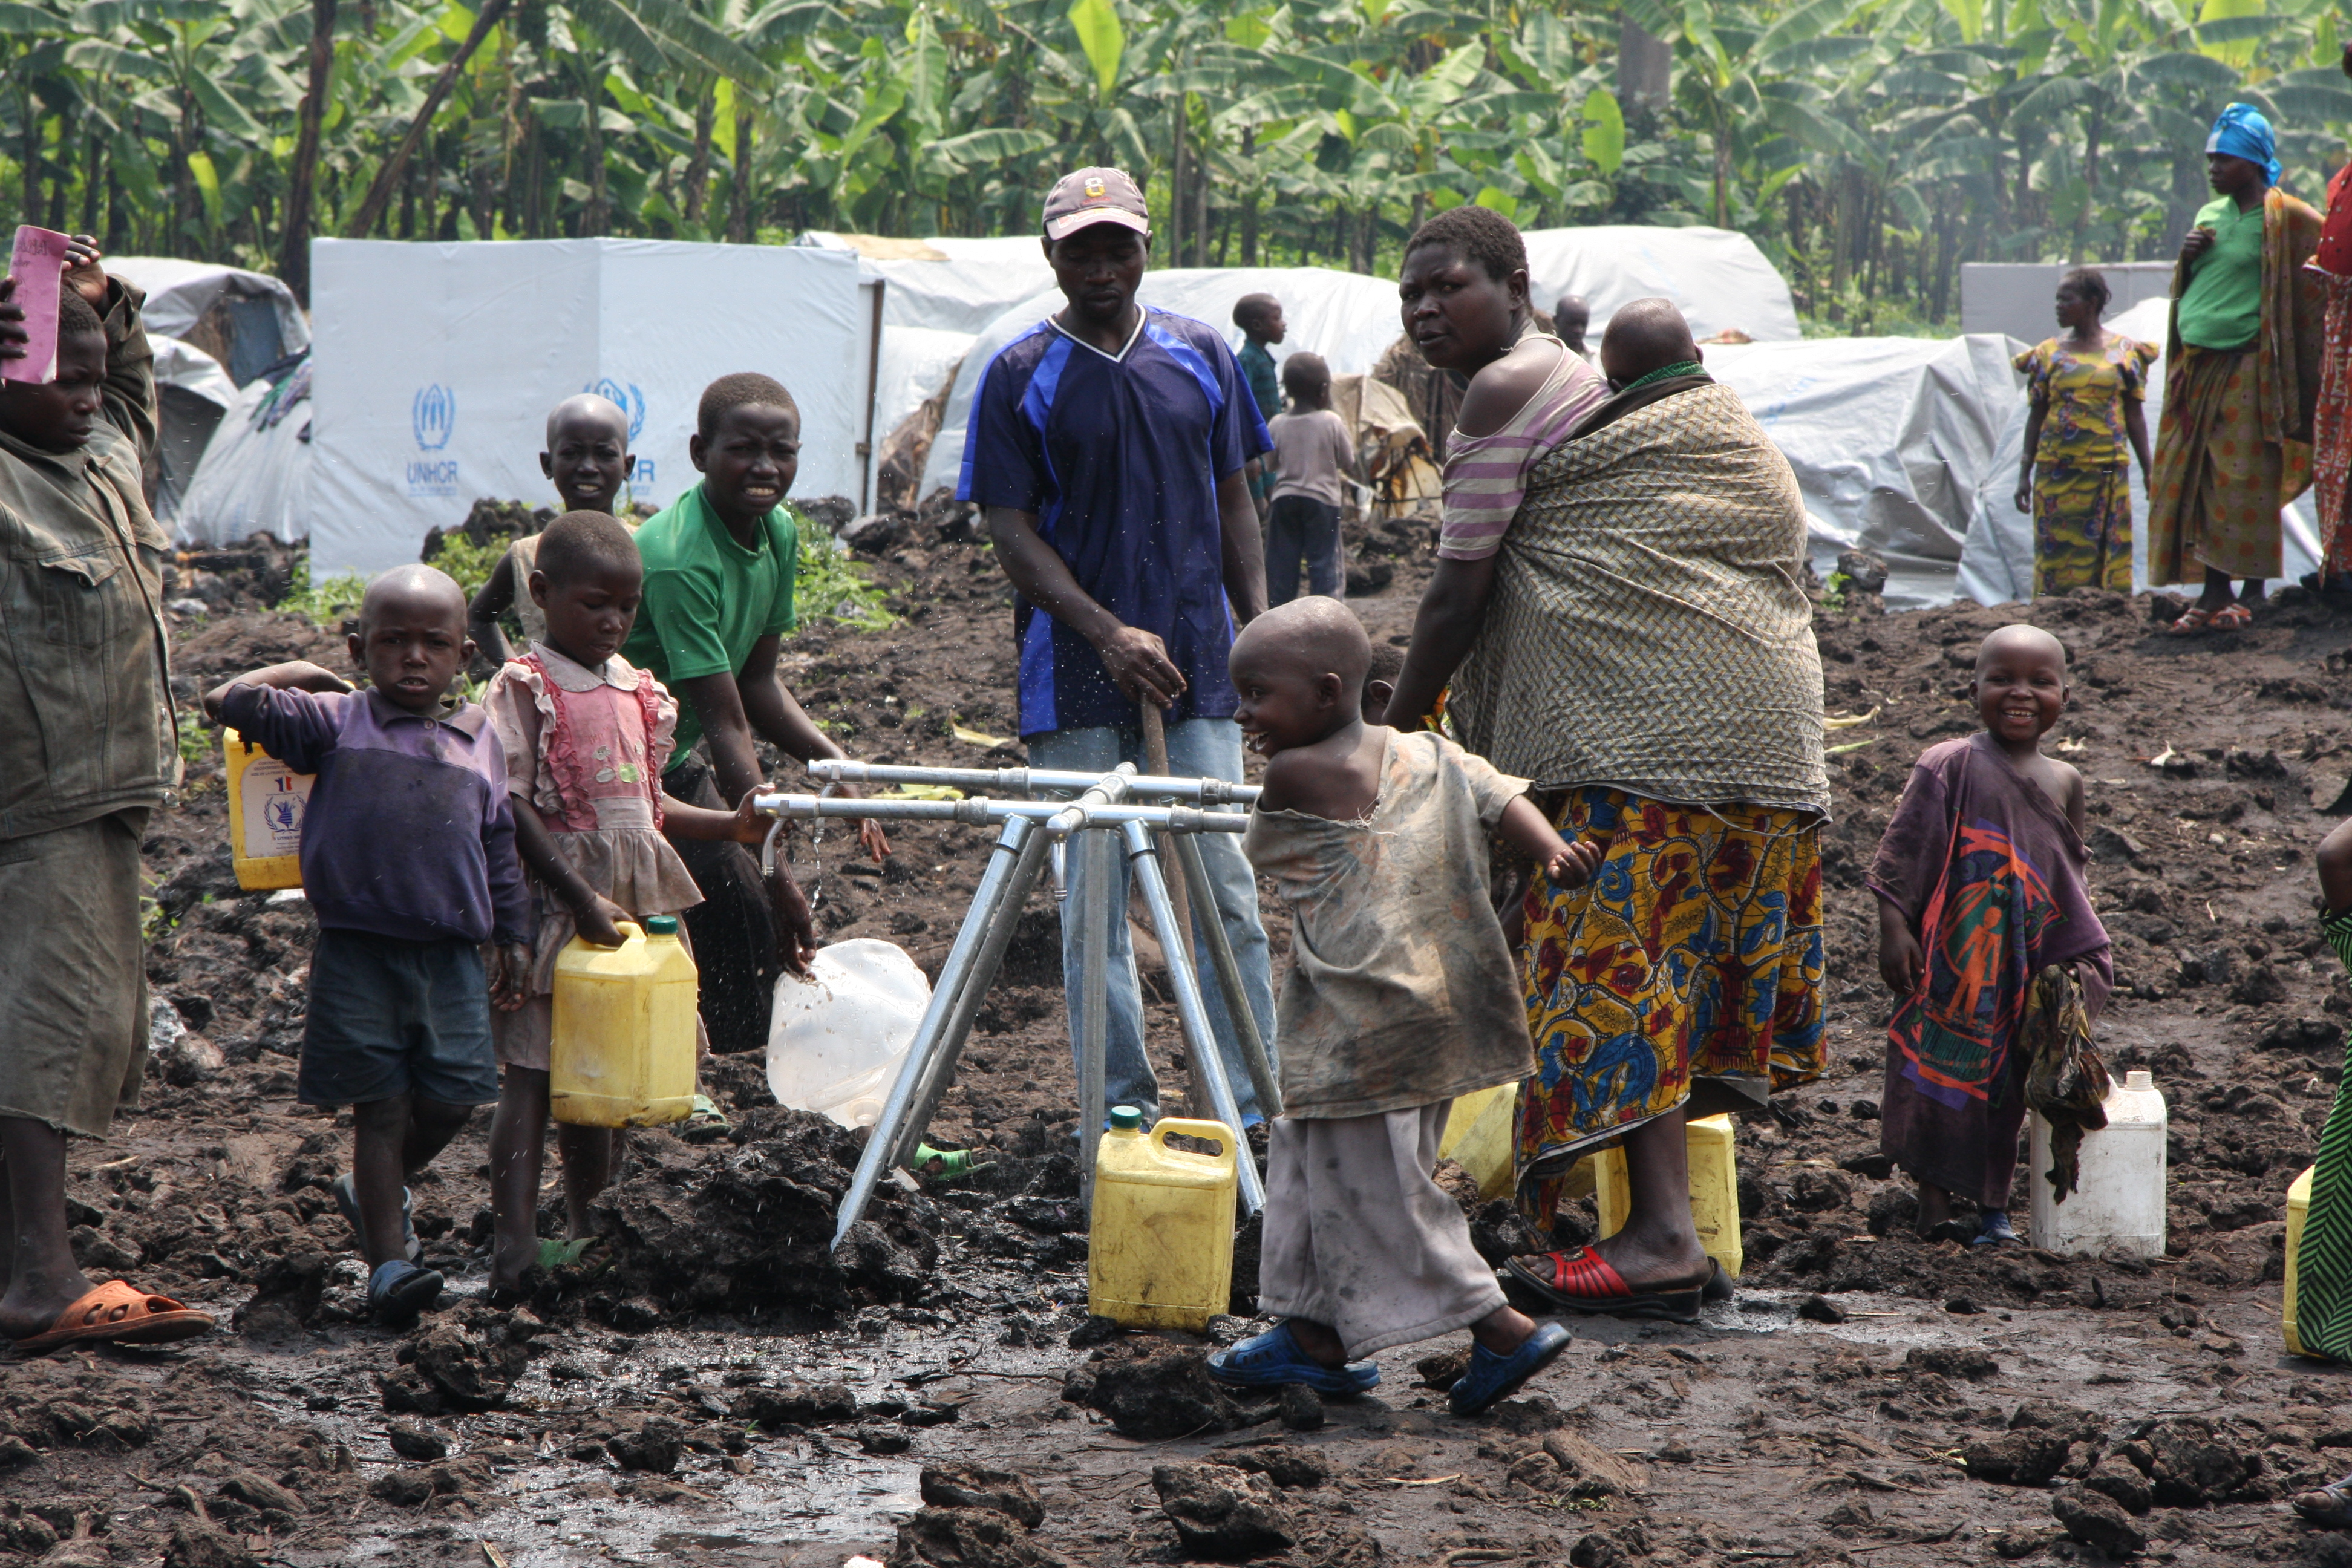 At a camp outside Goma, displaced people collect water to lug home to their shelters. Photo by Liz Lucas/Oxfam America